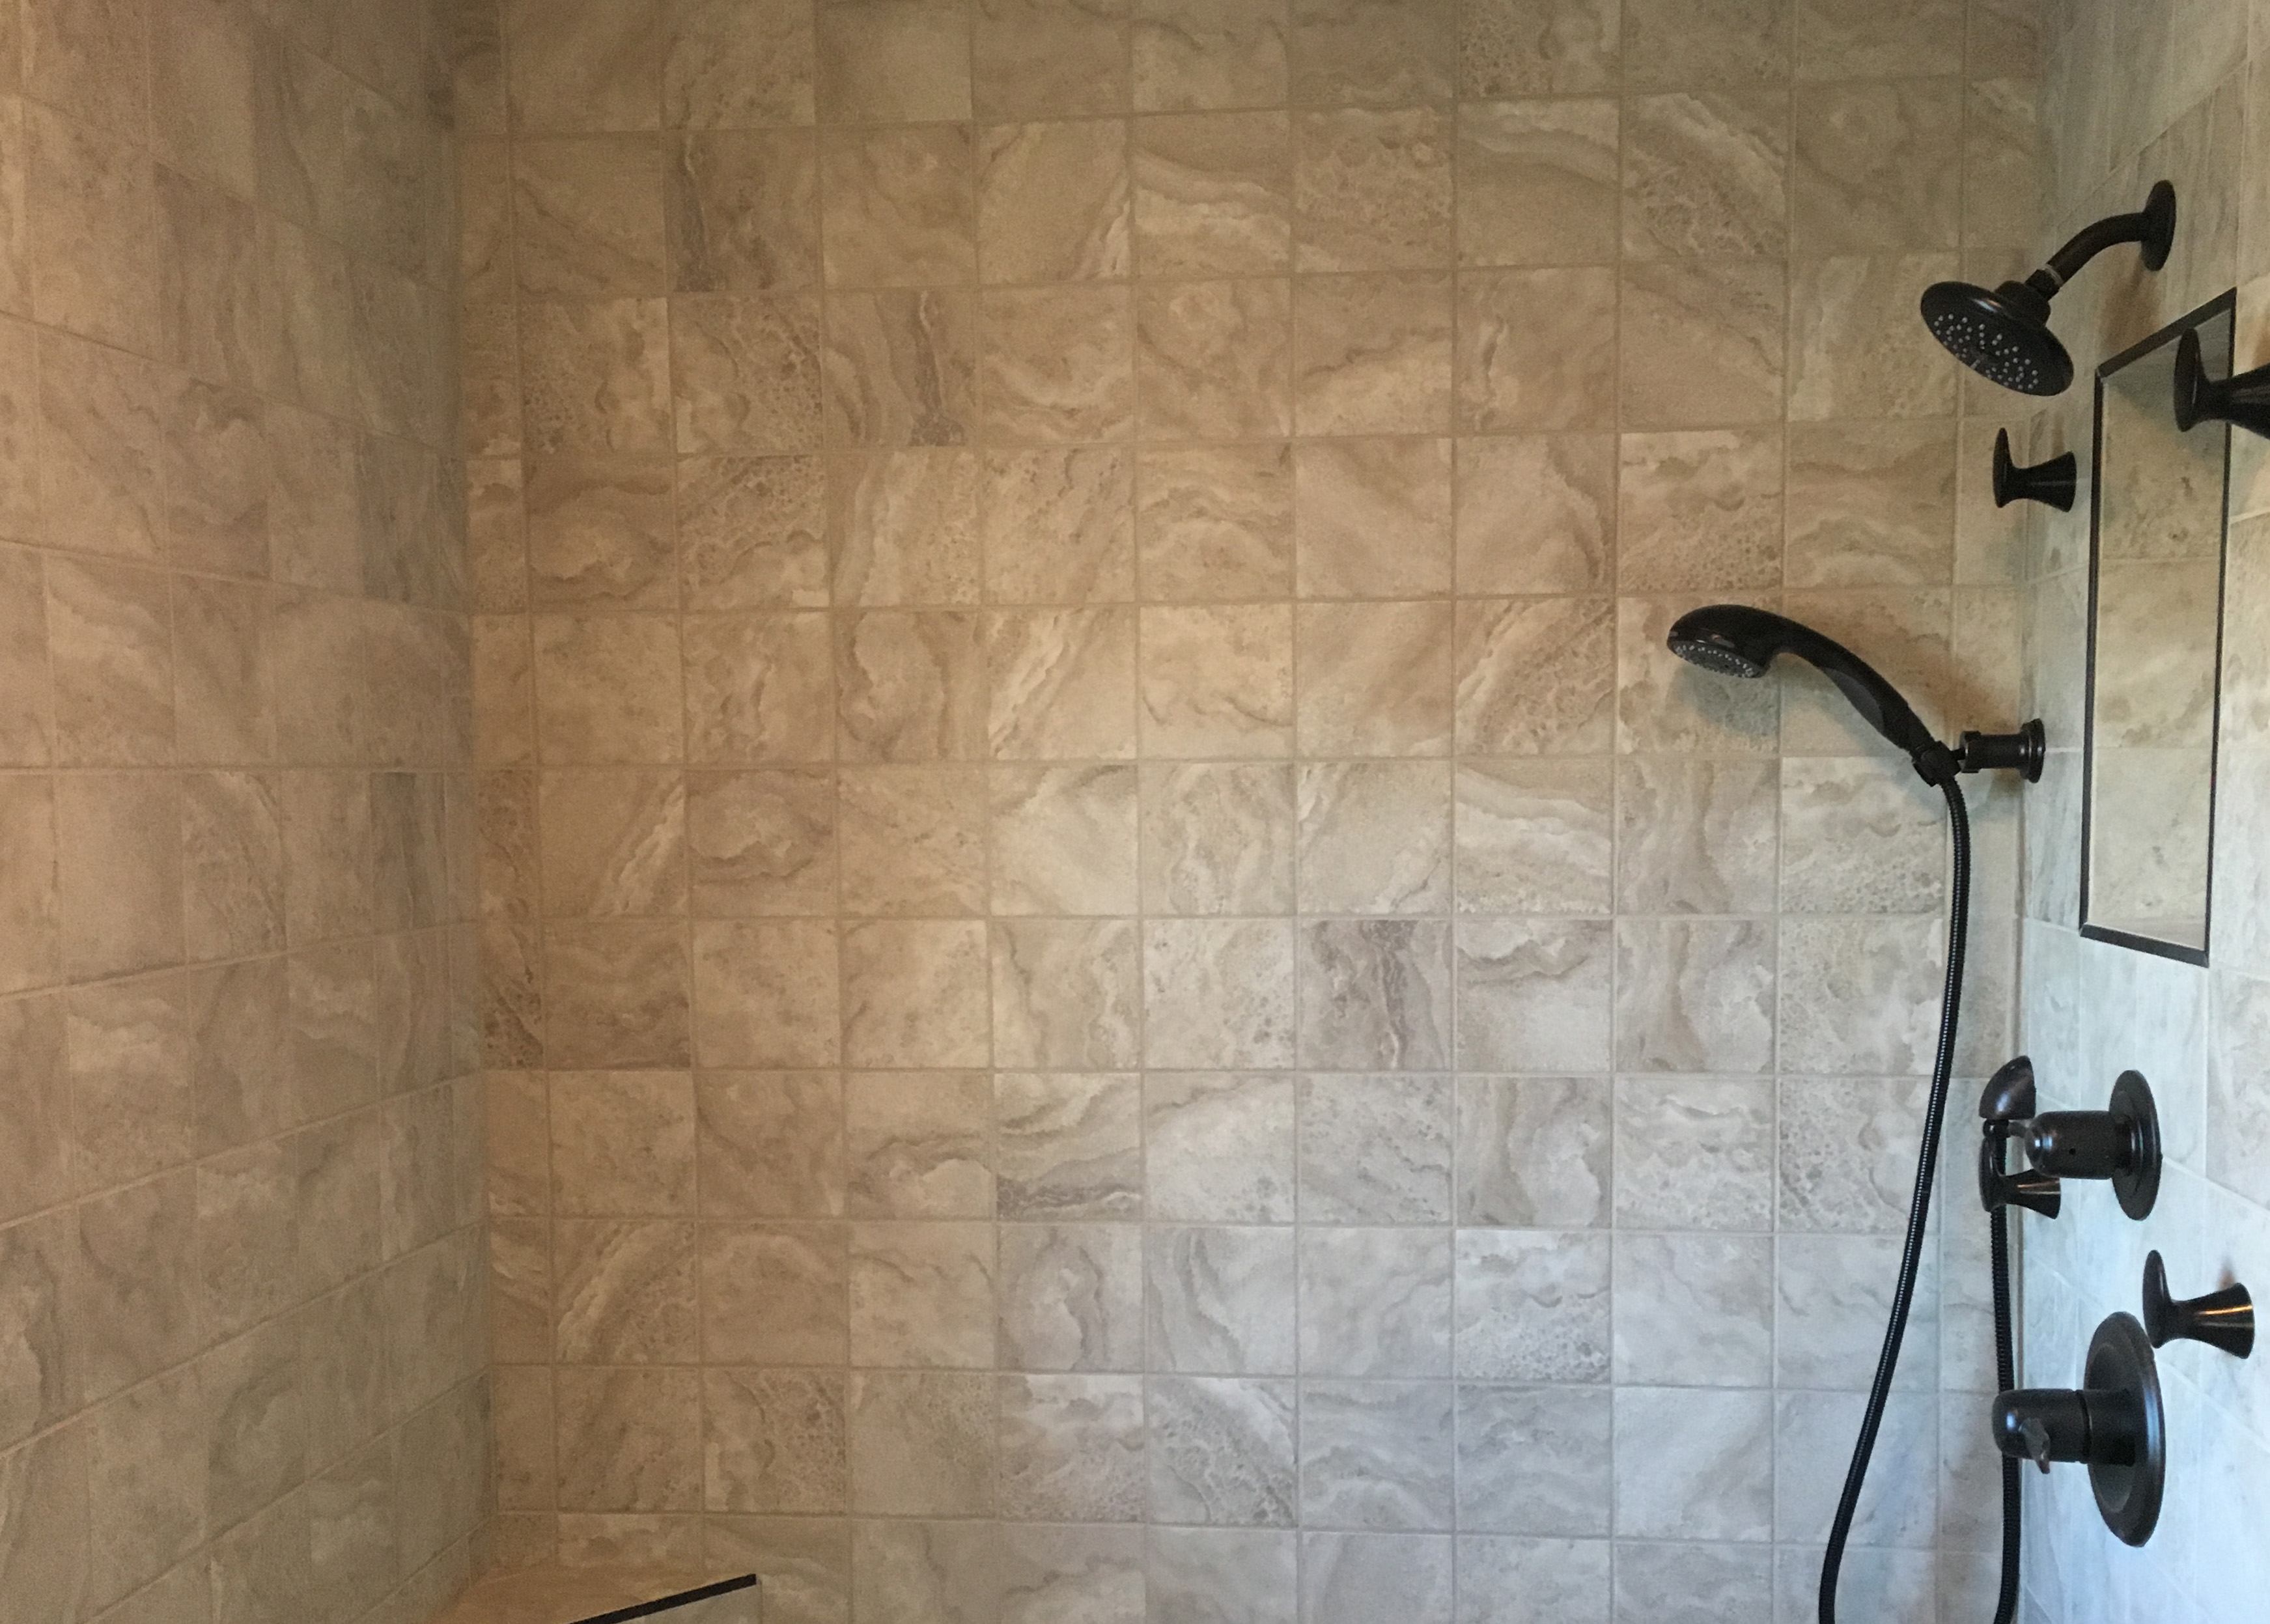 Tile work in bathrooms - His Work Is Clean Exact And Detailed And He Was Very Easy To Work With As We Started The Project Peter Was Easy To Communicate